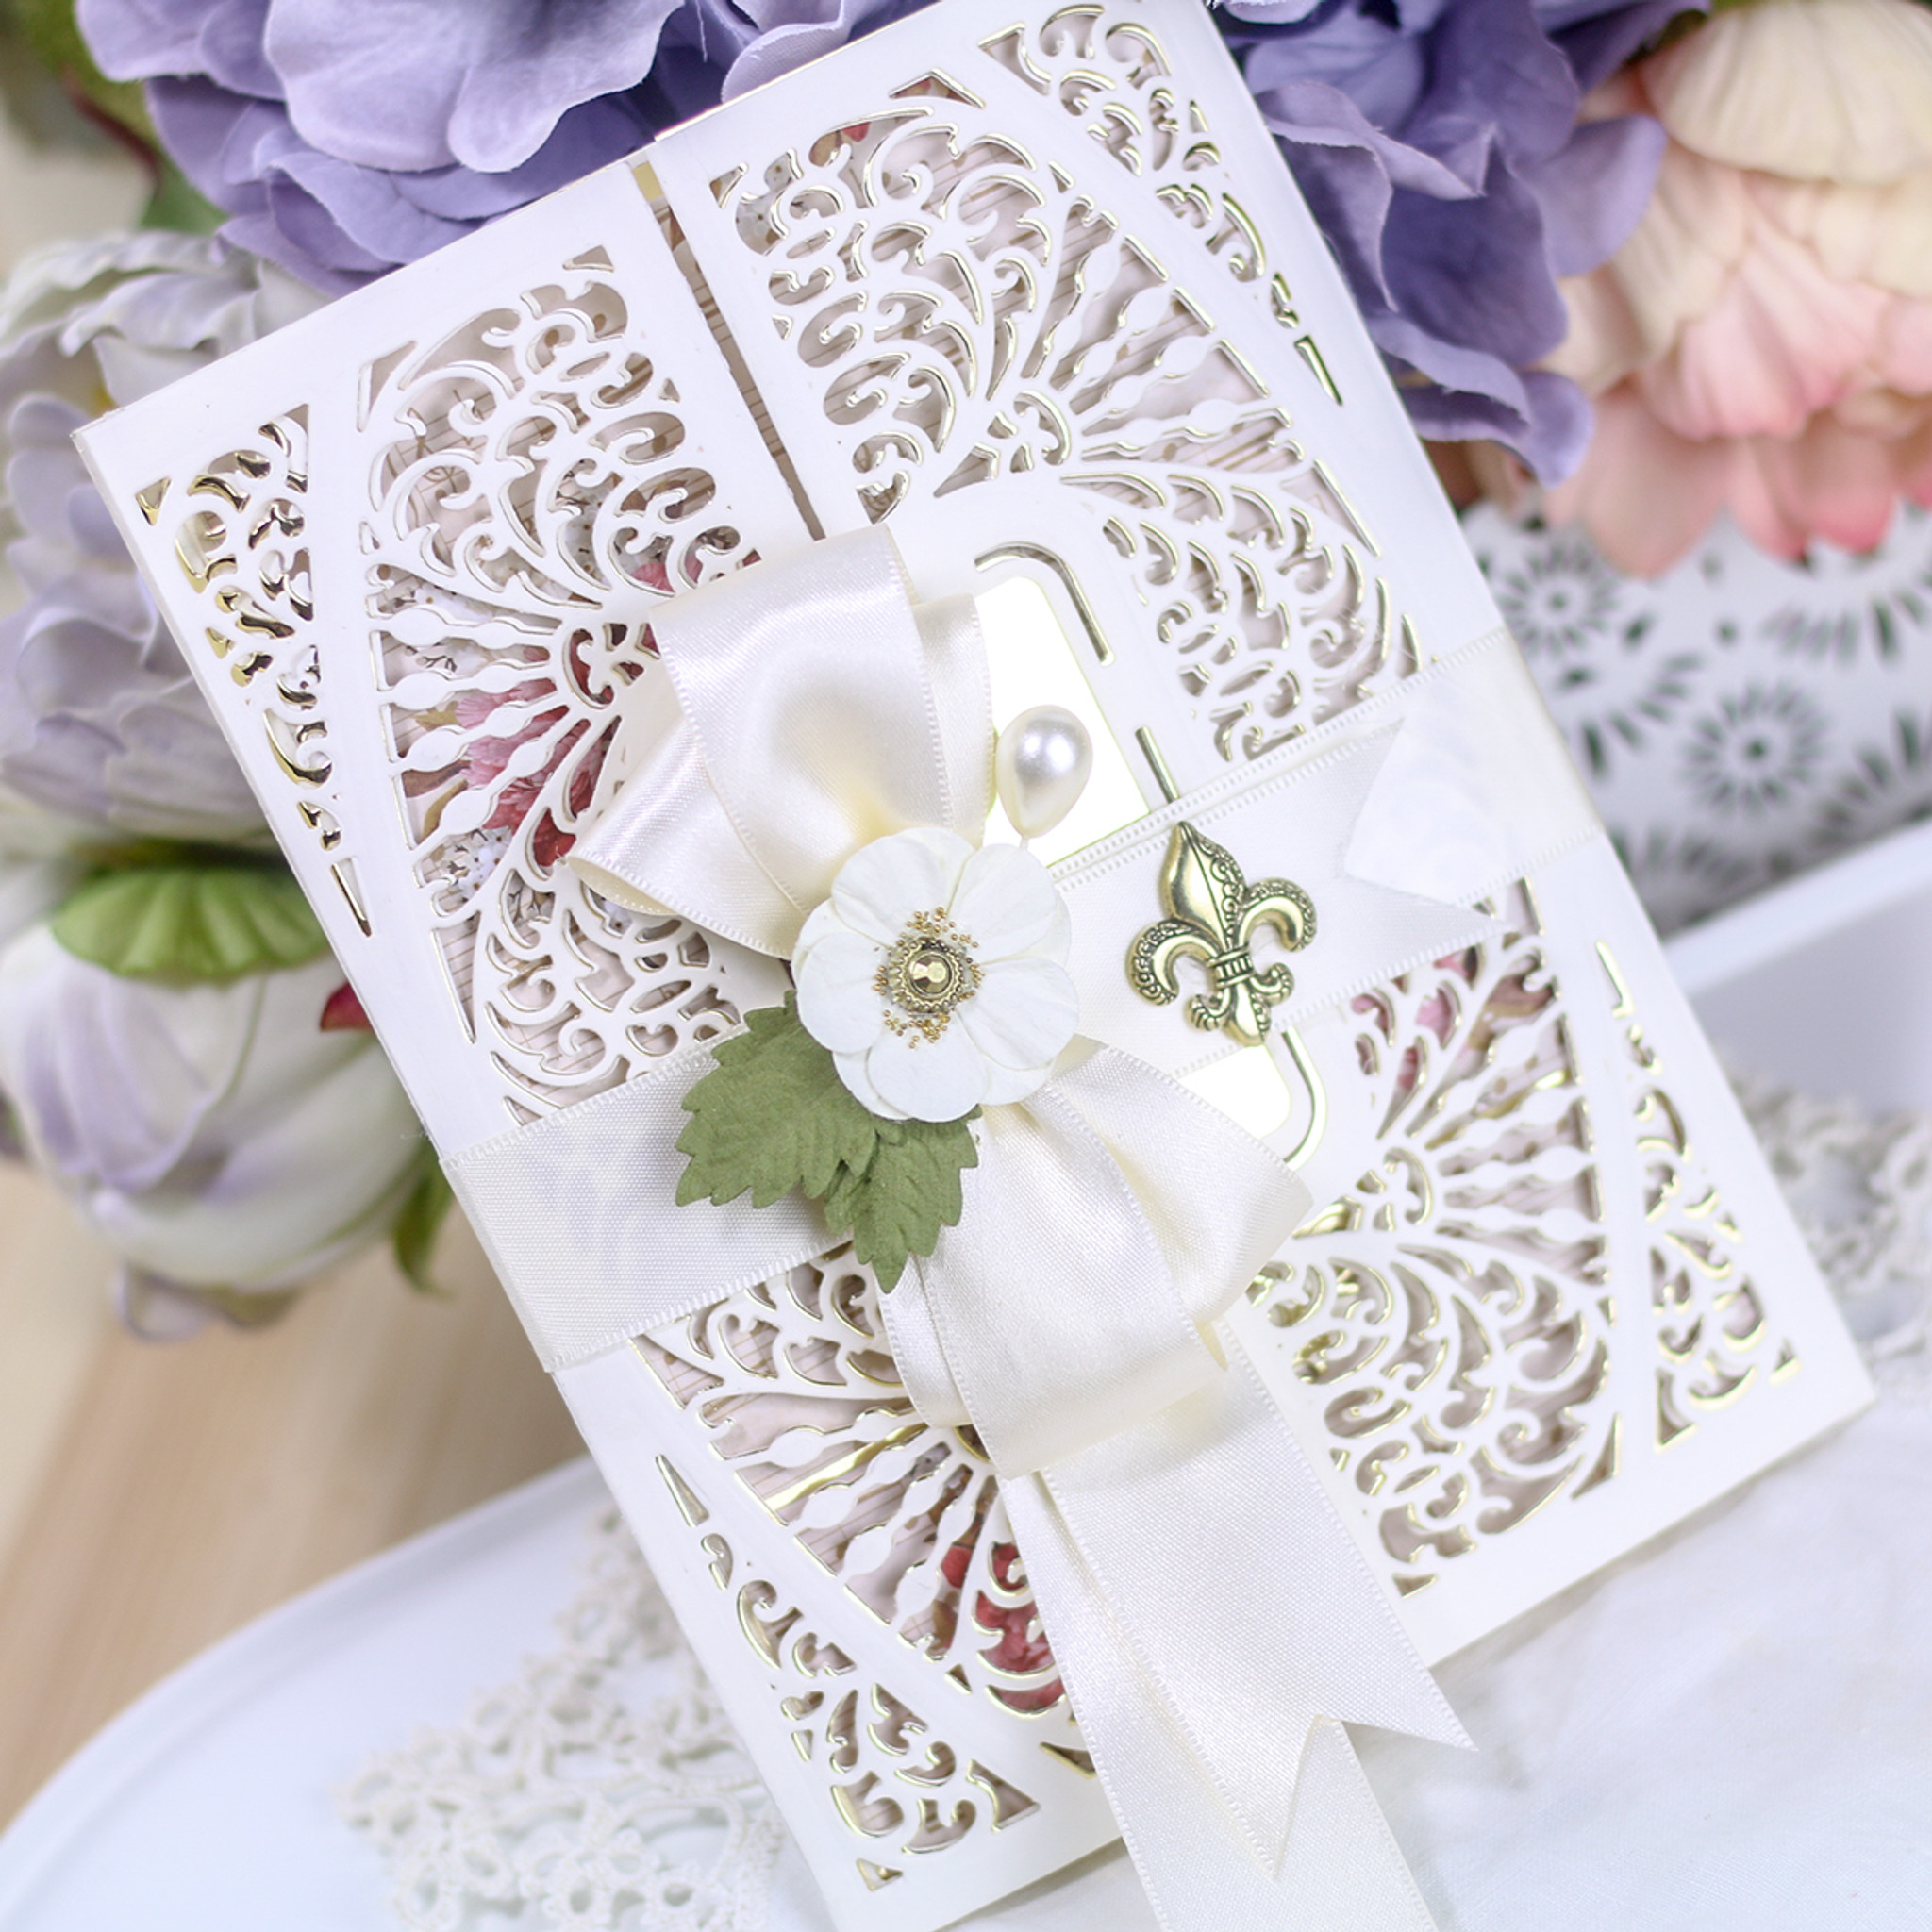 Corner Flip Memory Cards Pack of 3 with Envelopes for Fun Card Making NEW